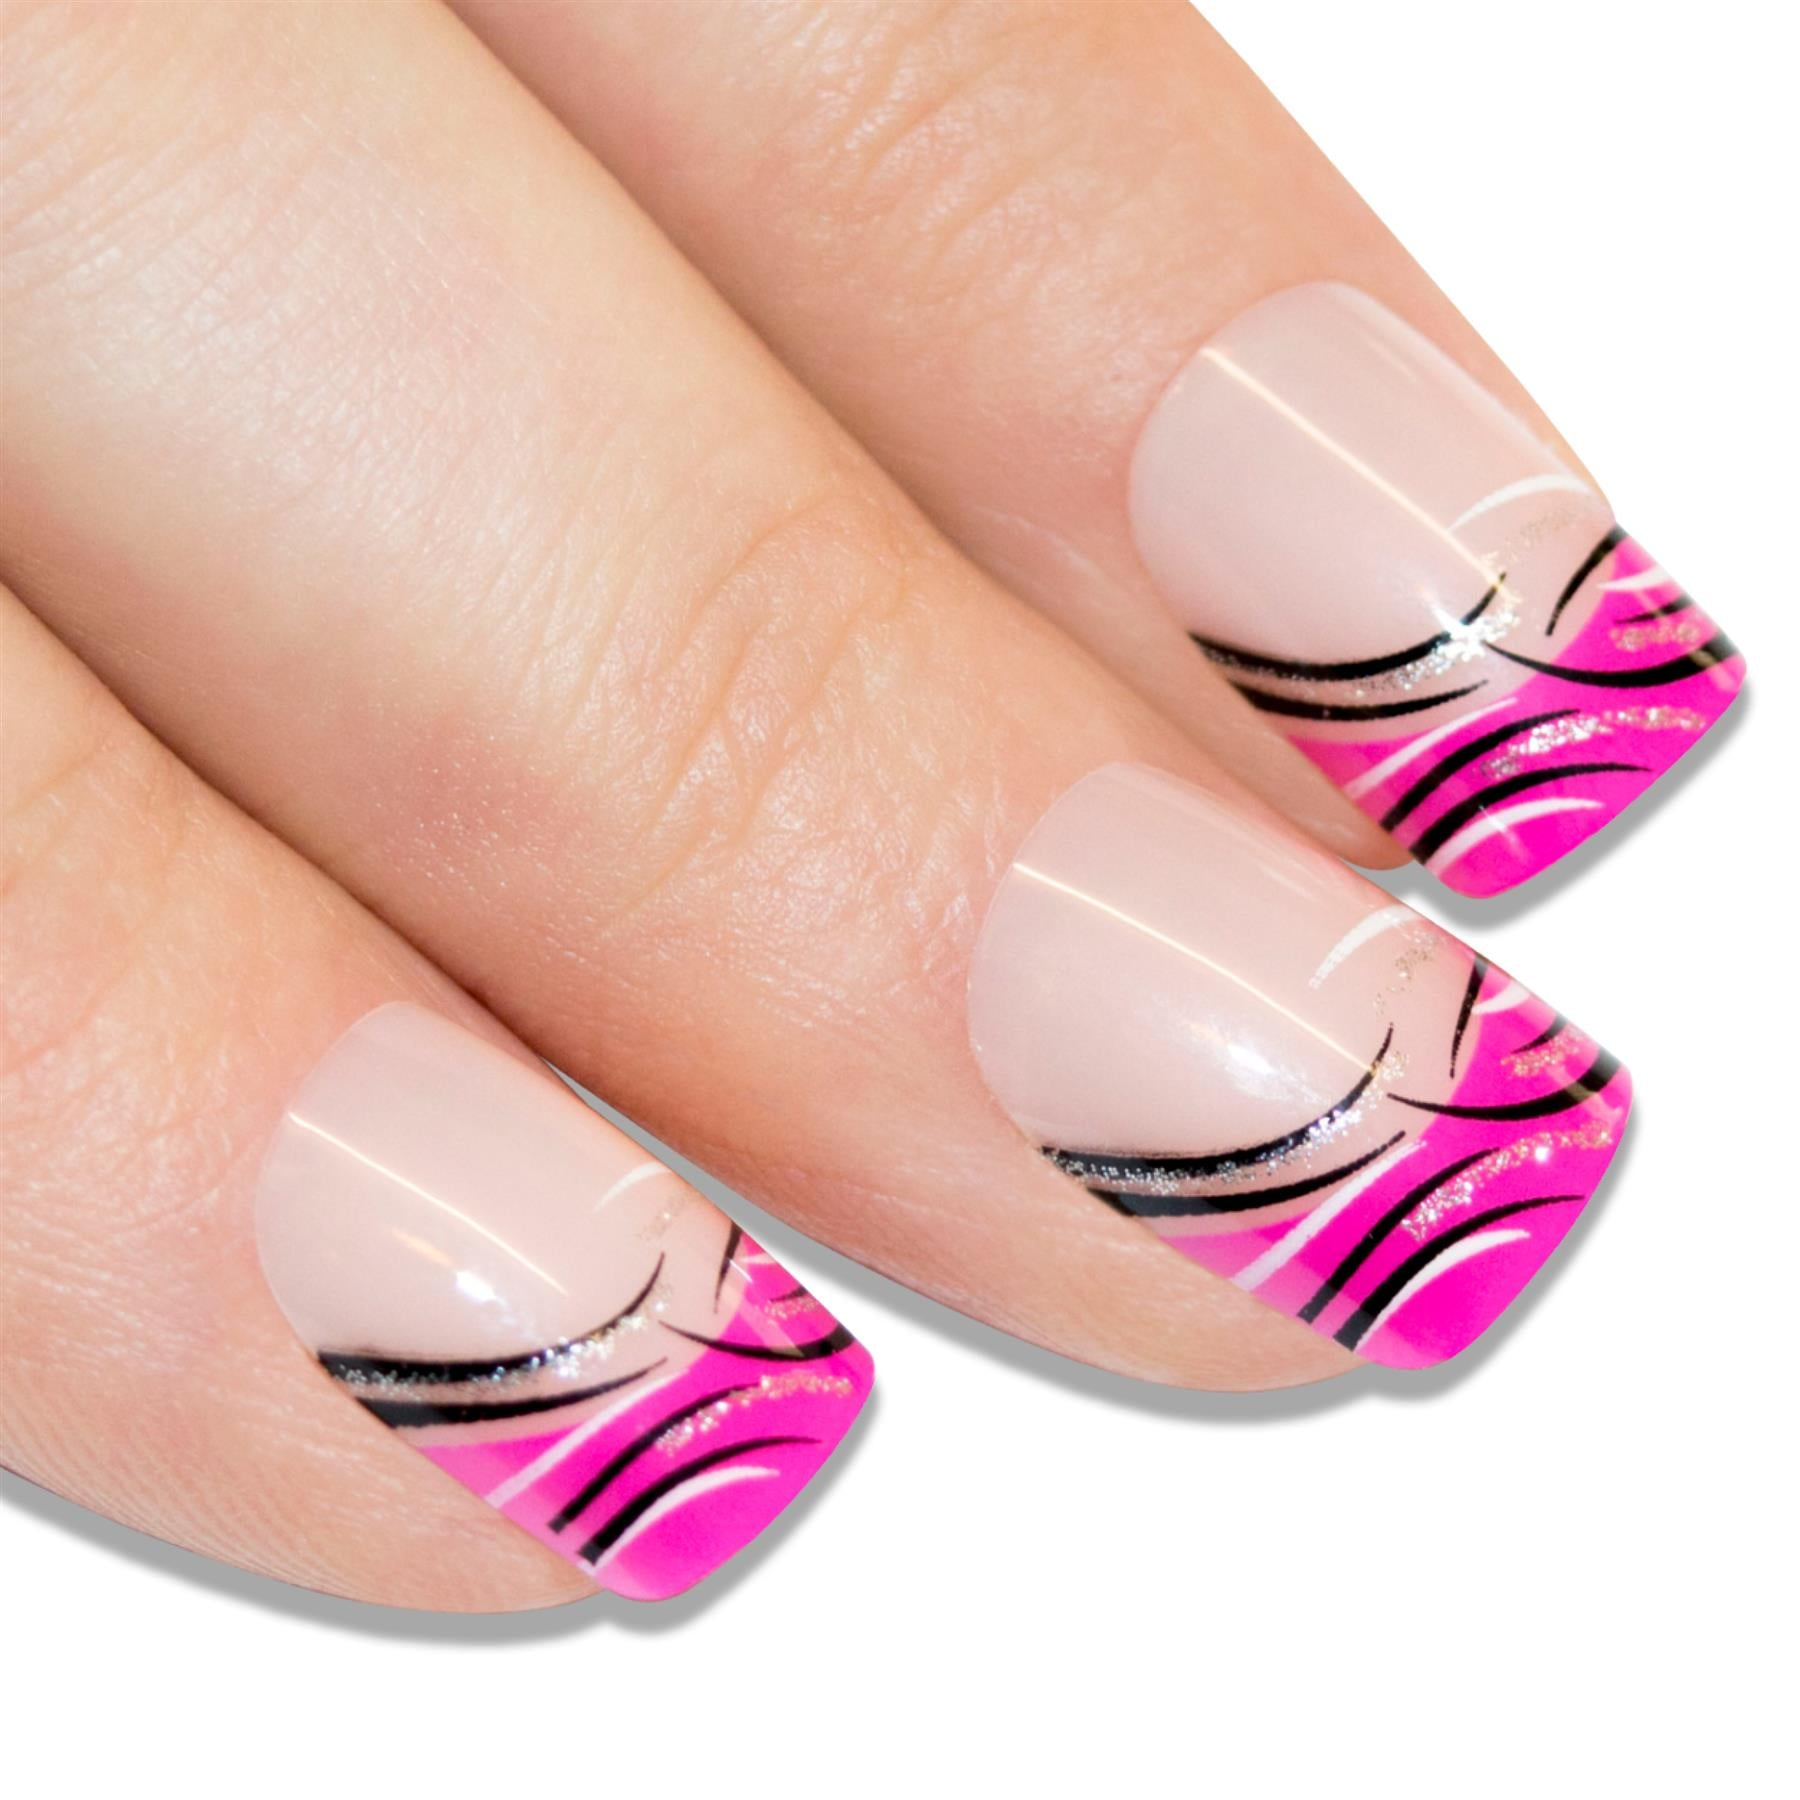 False Nails by Bling Art Glitter Pink French Manicure Fake Medium Tips with Glue, Nail Care by Bling Art